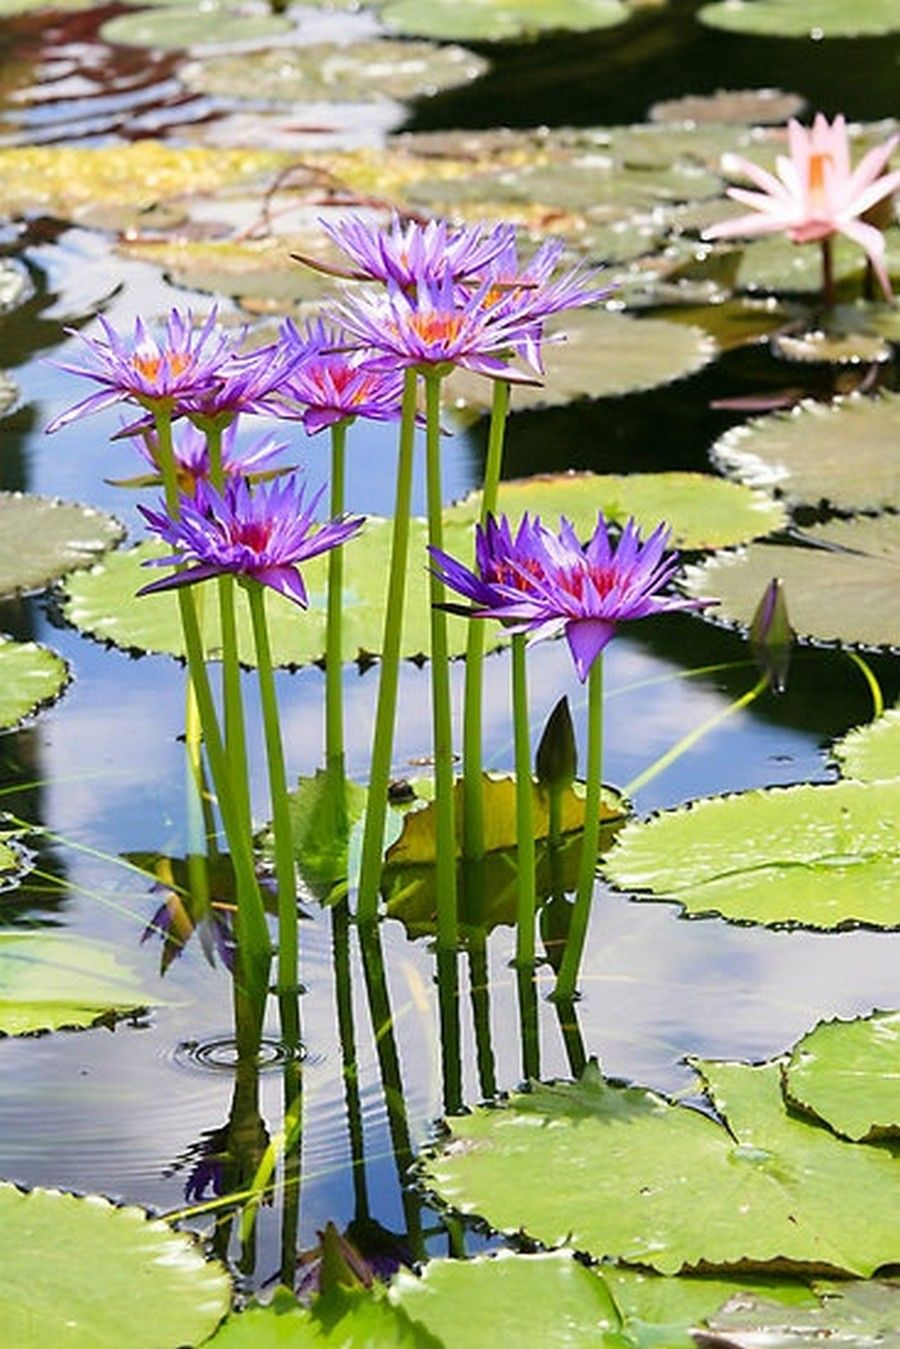 Lotus flower in pond houses architecture pinterest lotus lotus flower in pond izmirmasajfo